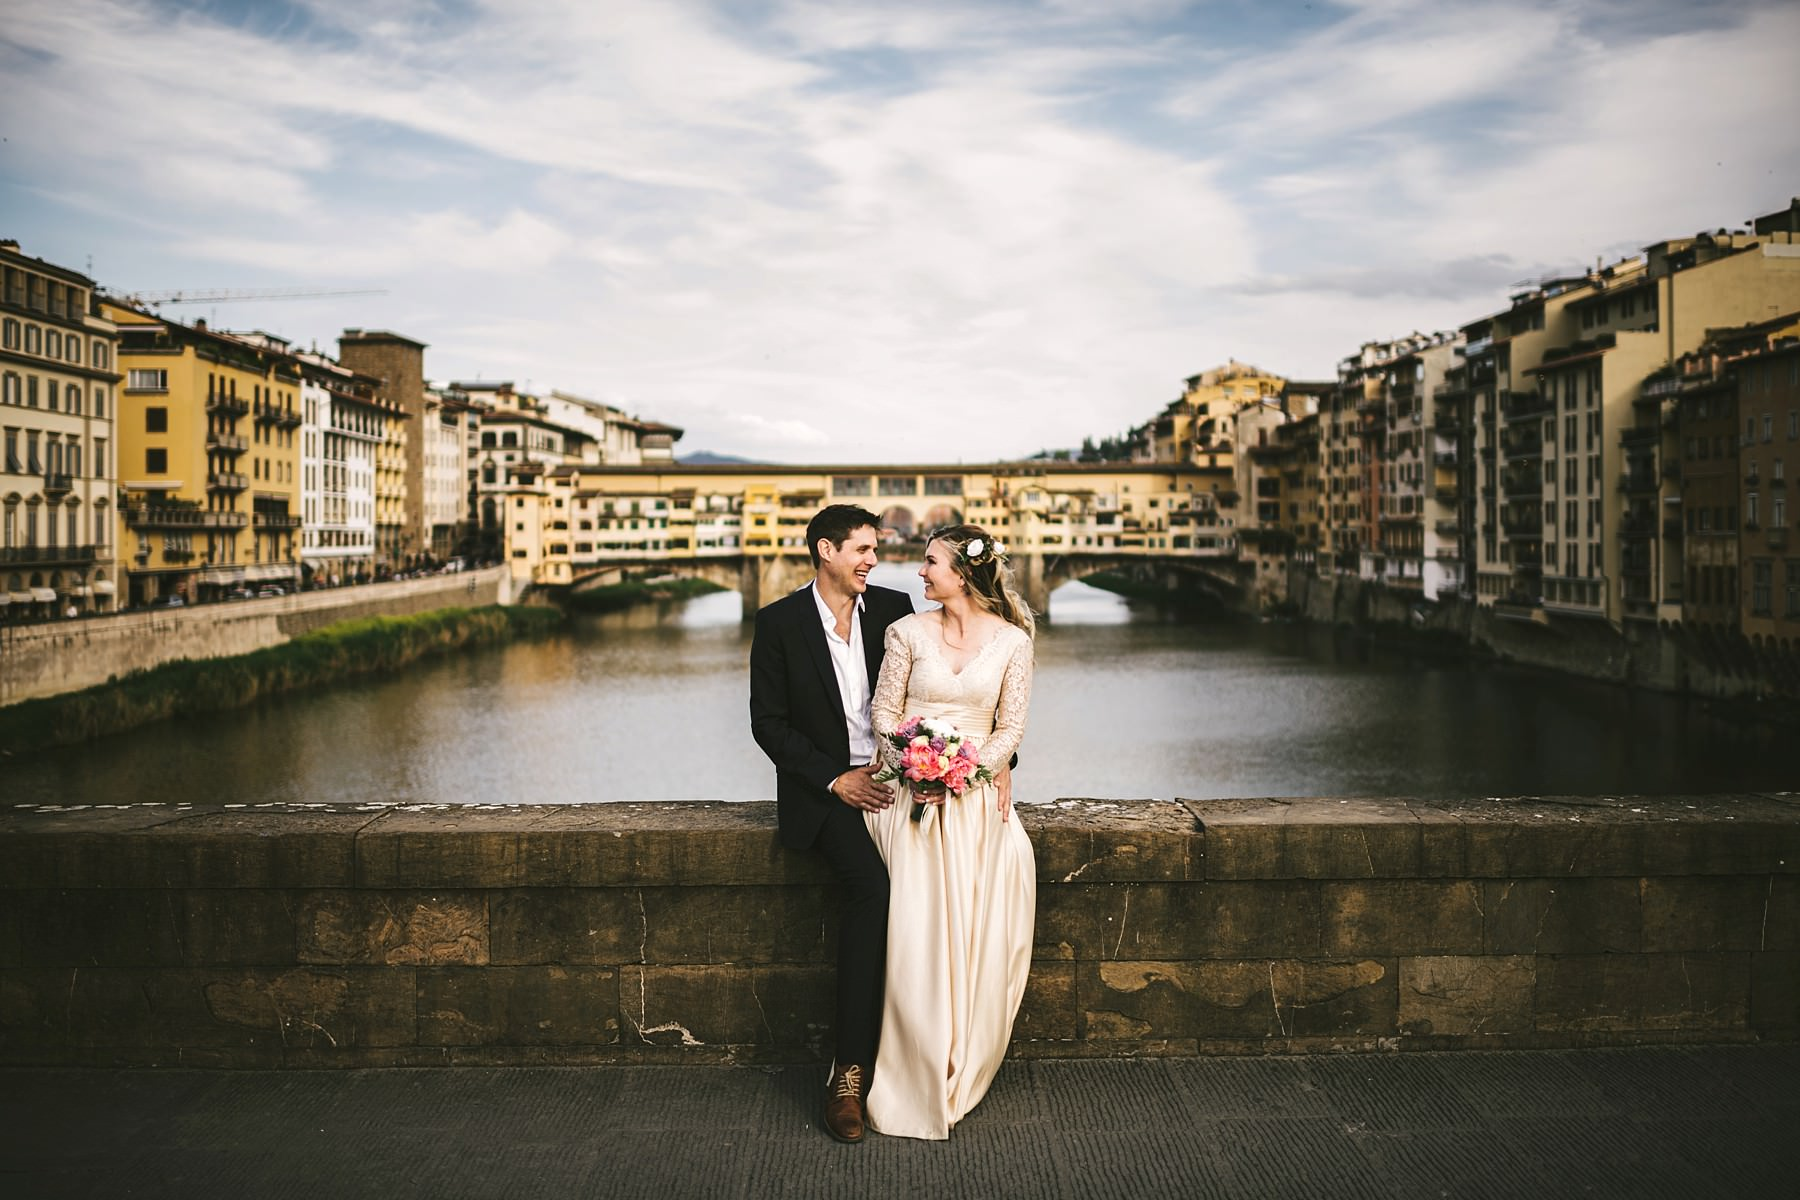 Dreamy and exciting couple portrait photo shoot with vows renewal in Florence near Ponte Vecchio